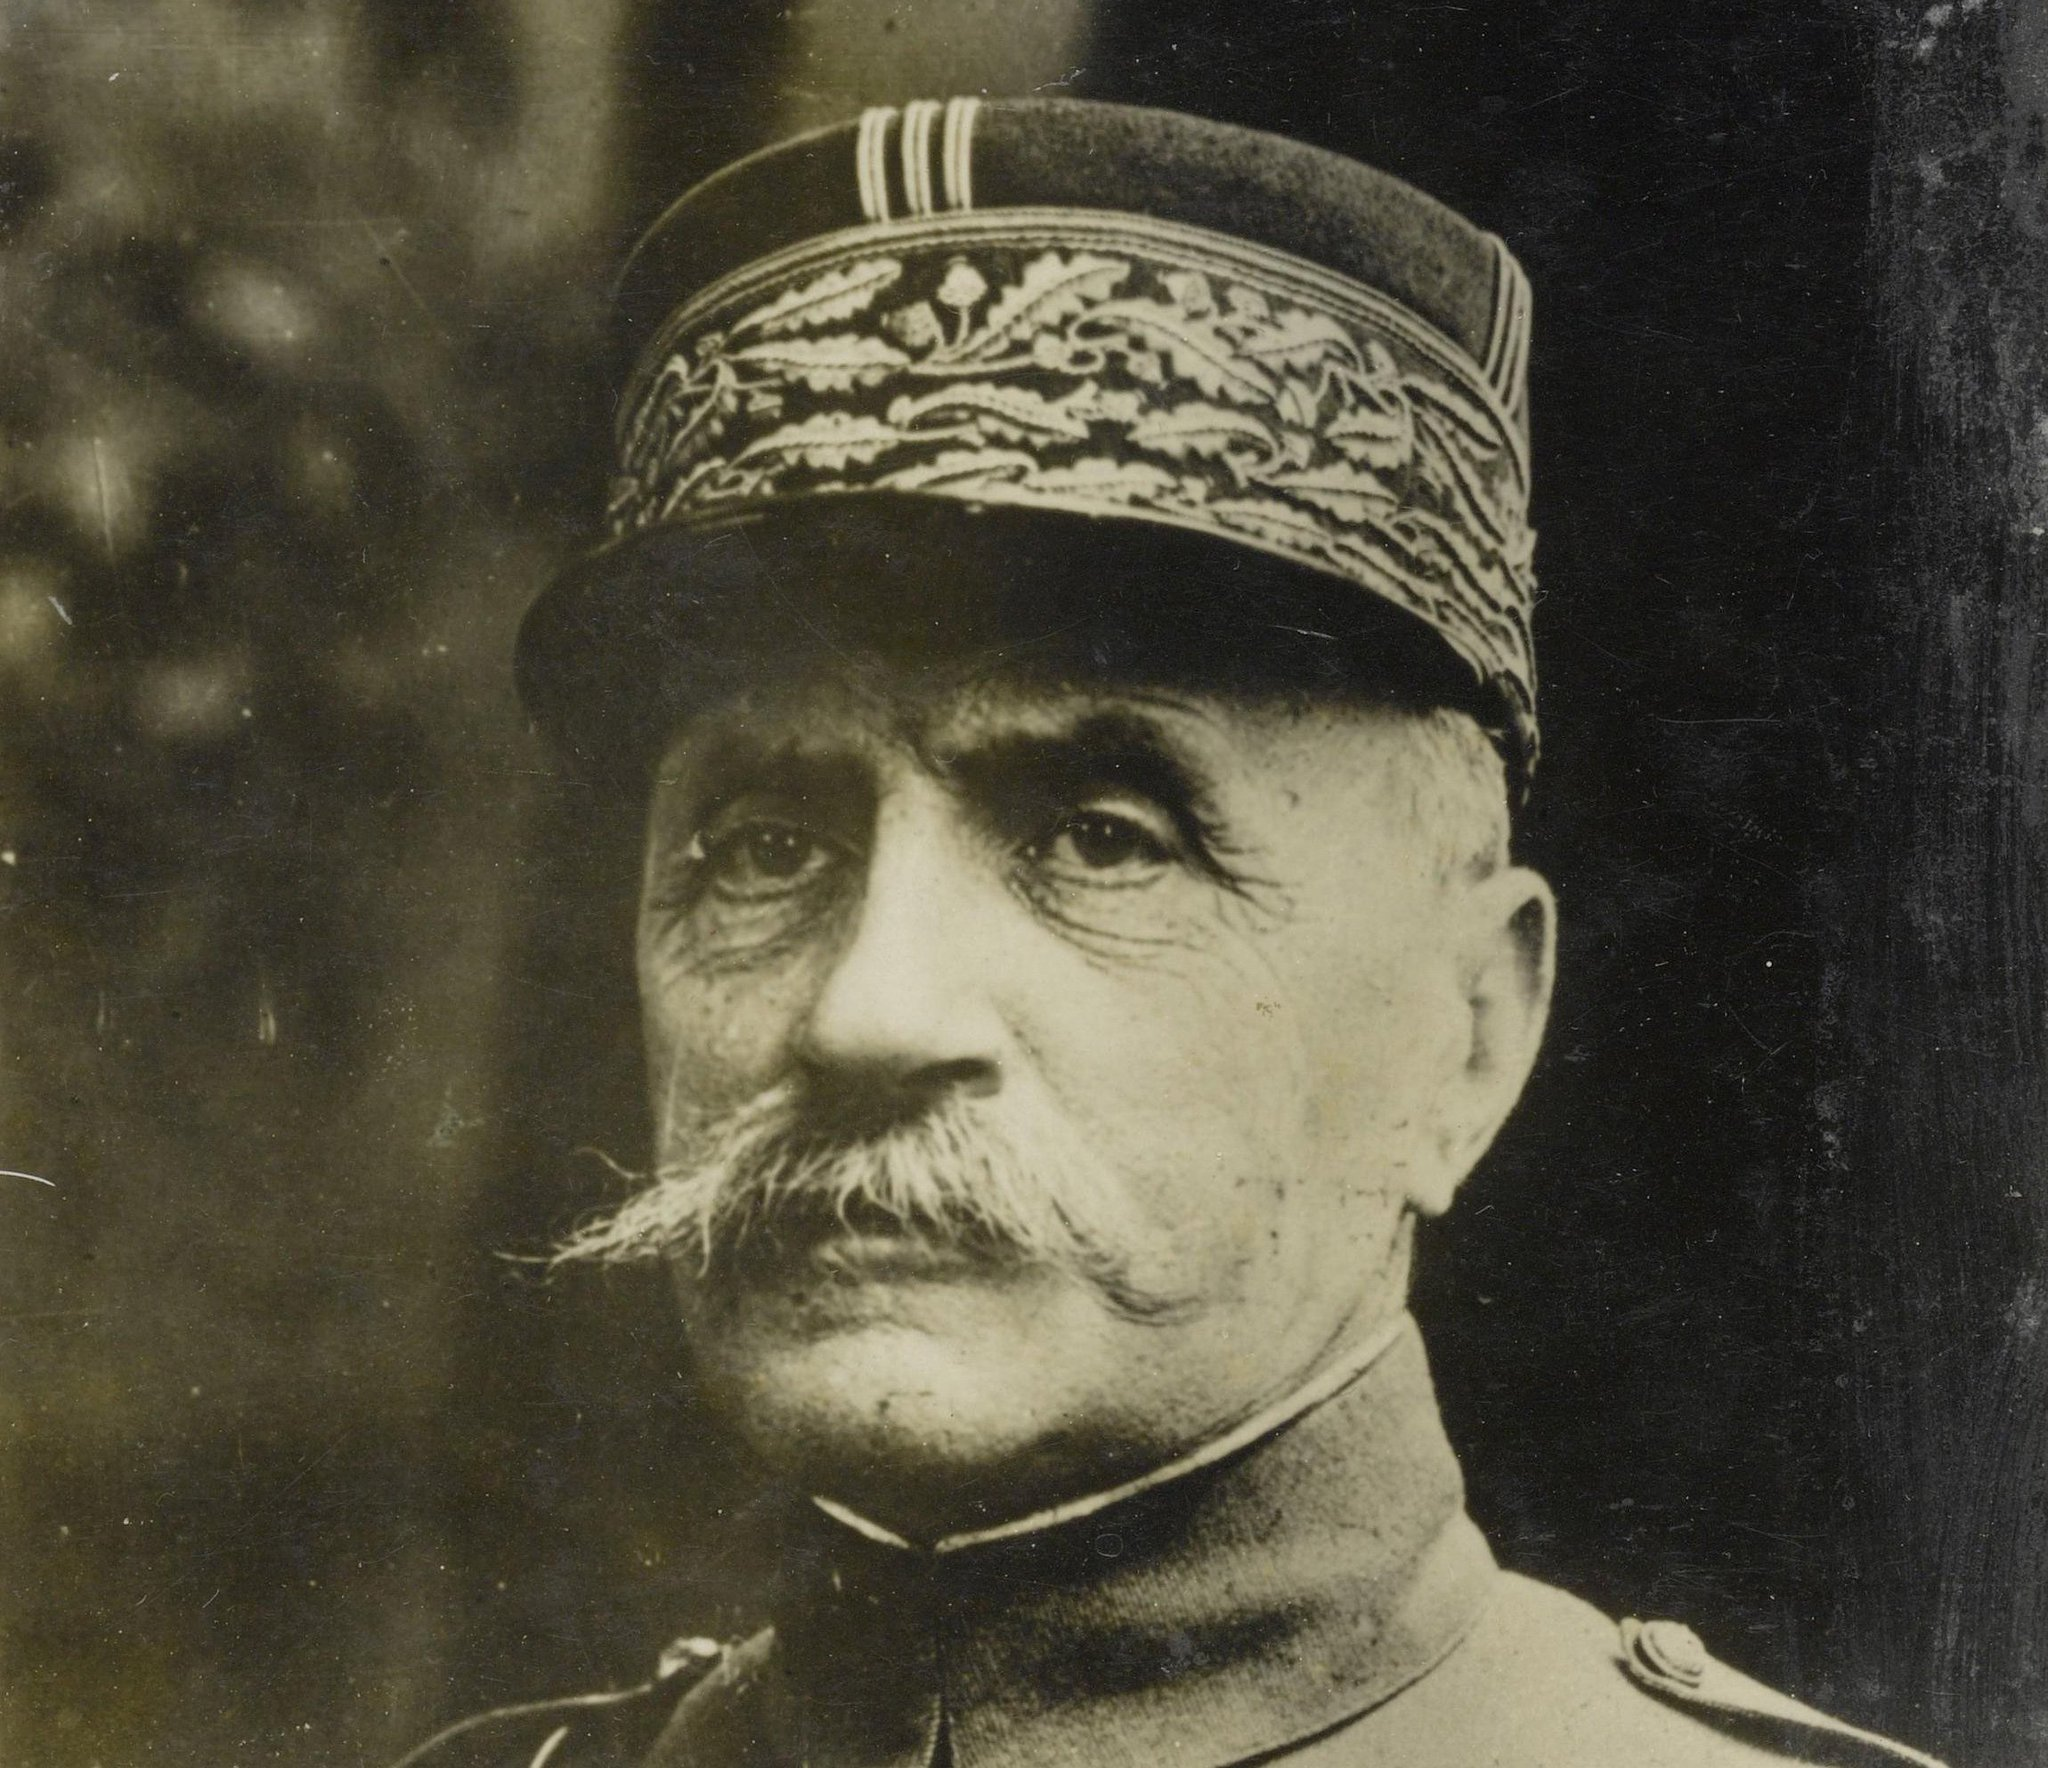 """In 1919 Ferdinand Foch, a leading French general, was angered by the final terms of the Treaty of Versailles and had remarked, """"This is not a peace. It is an armistice for twenty years"""" https://t.co/iRlMywCdJp"""